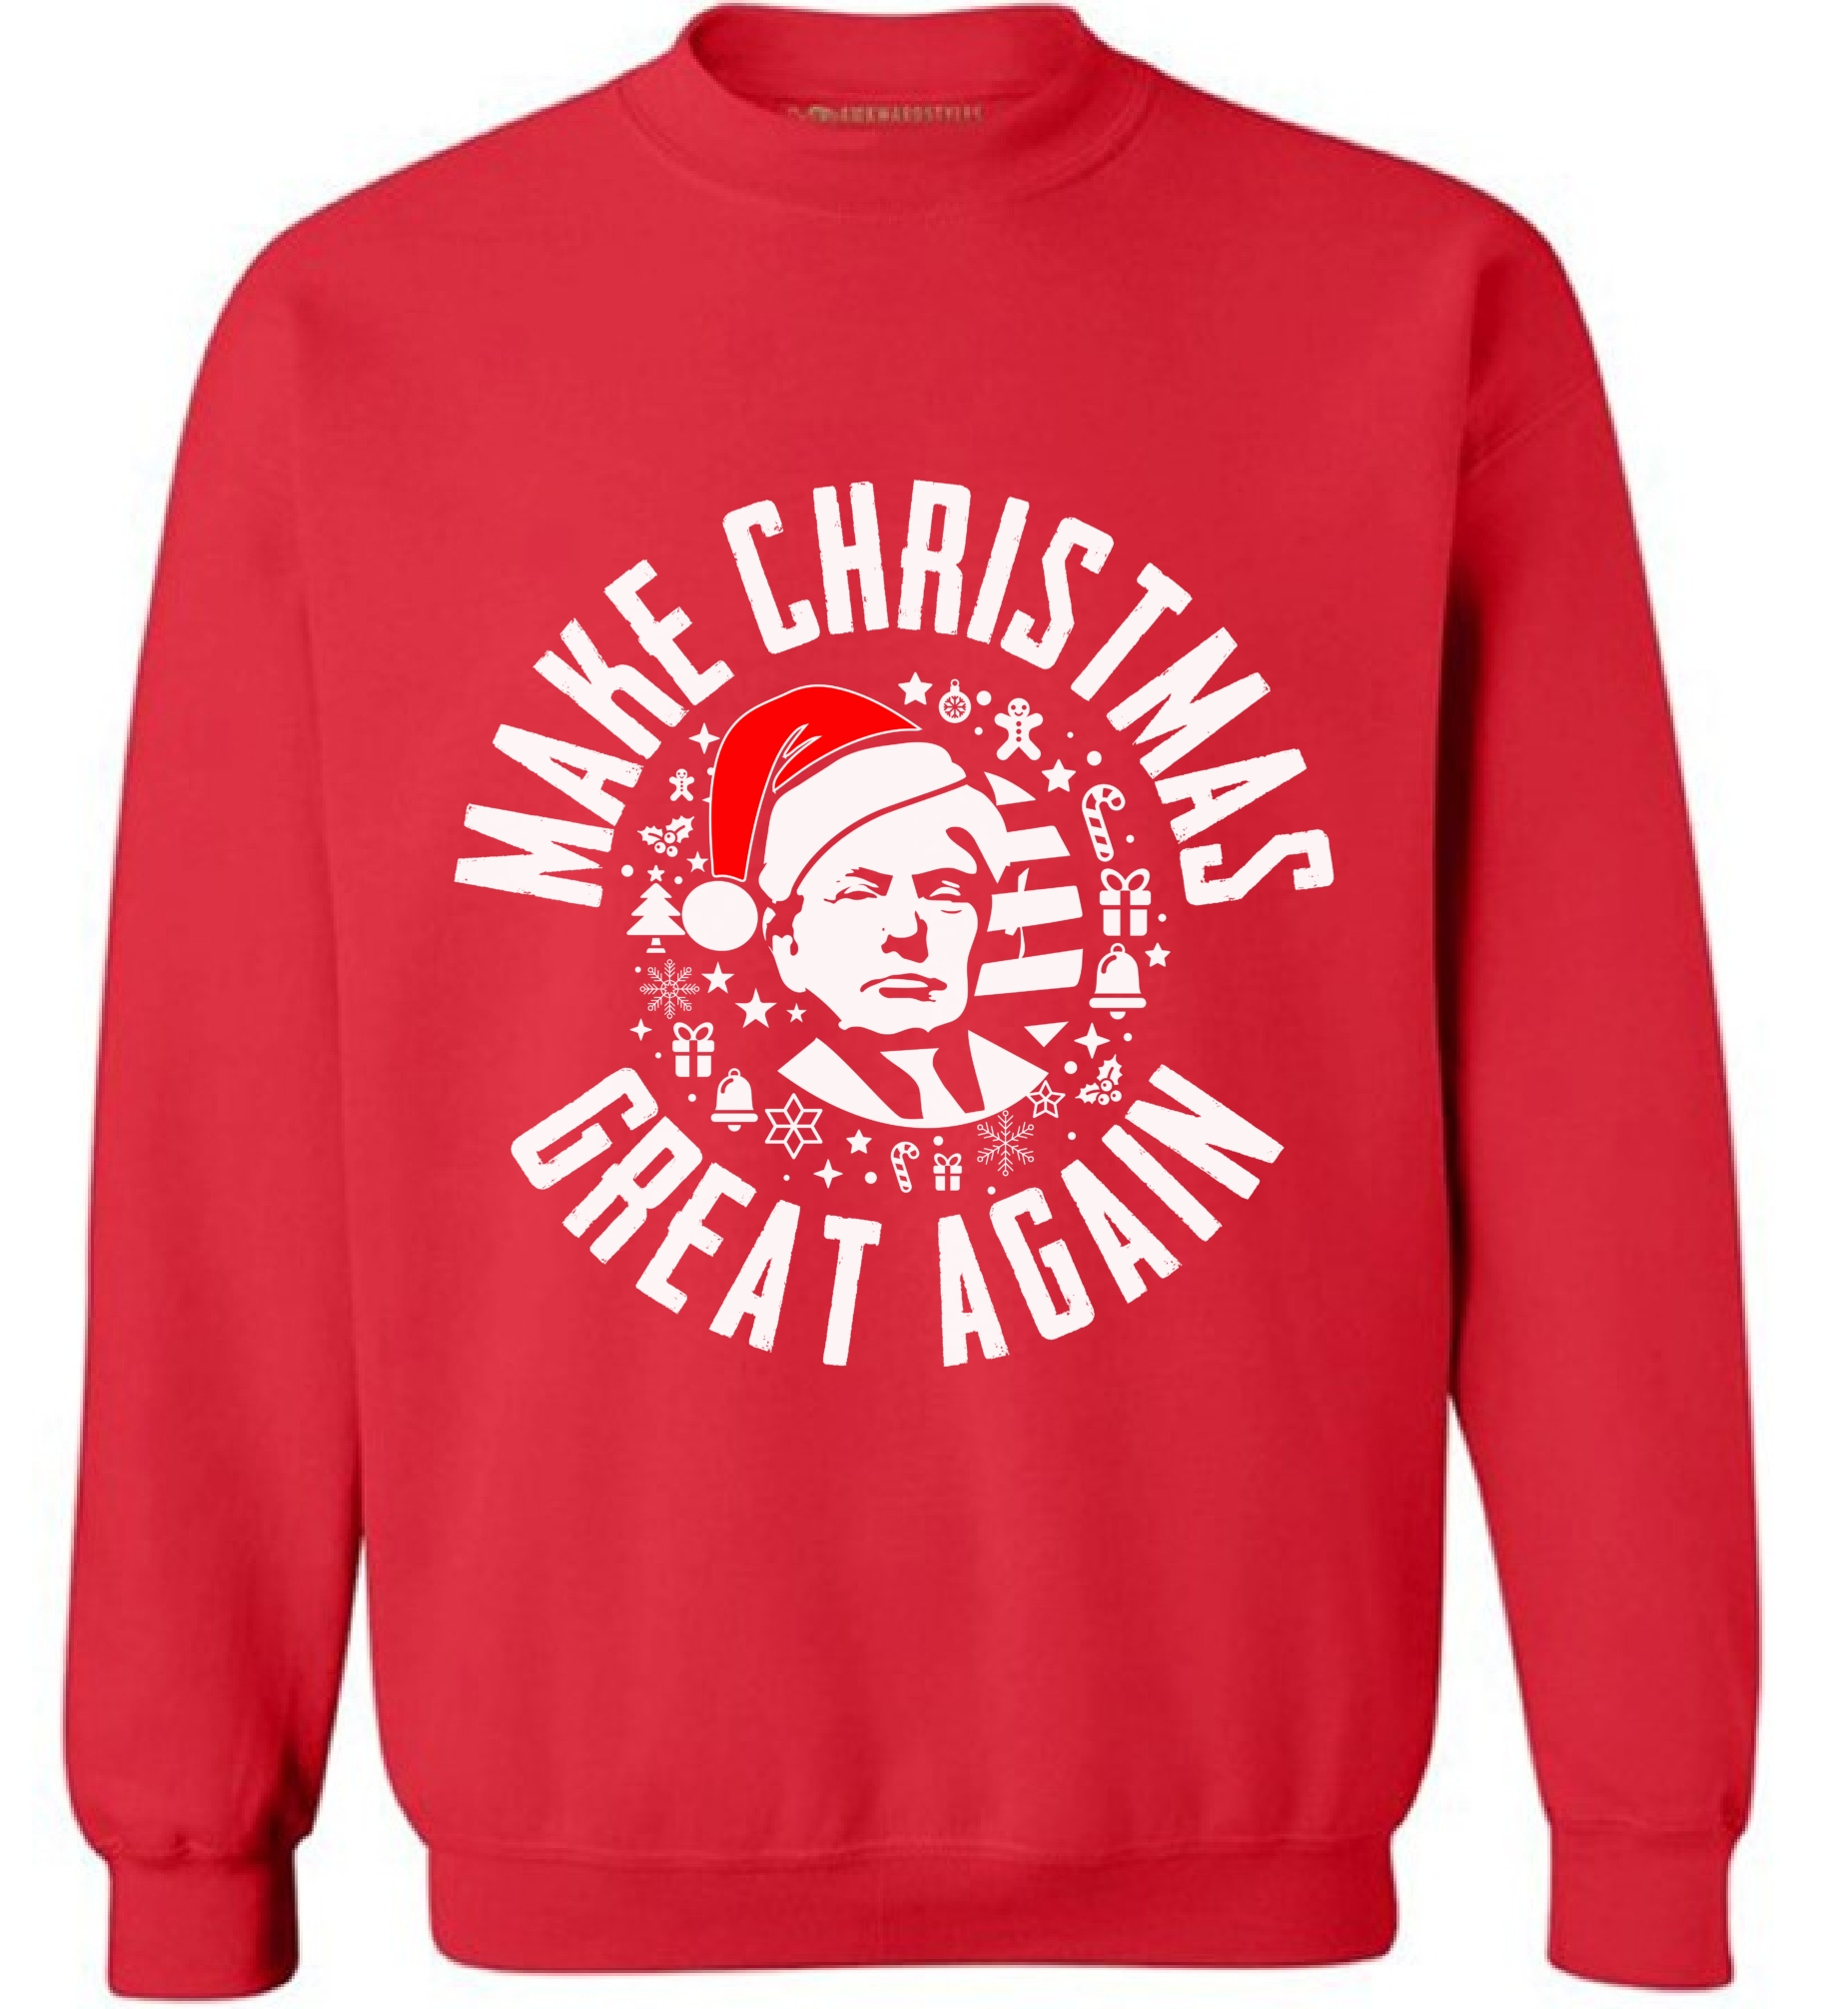 Make Christmas Great Again Sweatshirt Funny Trump Christmas ...